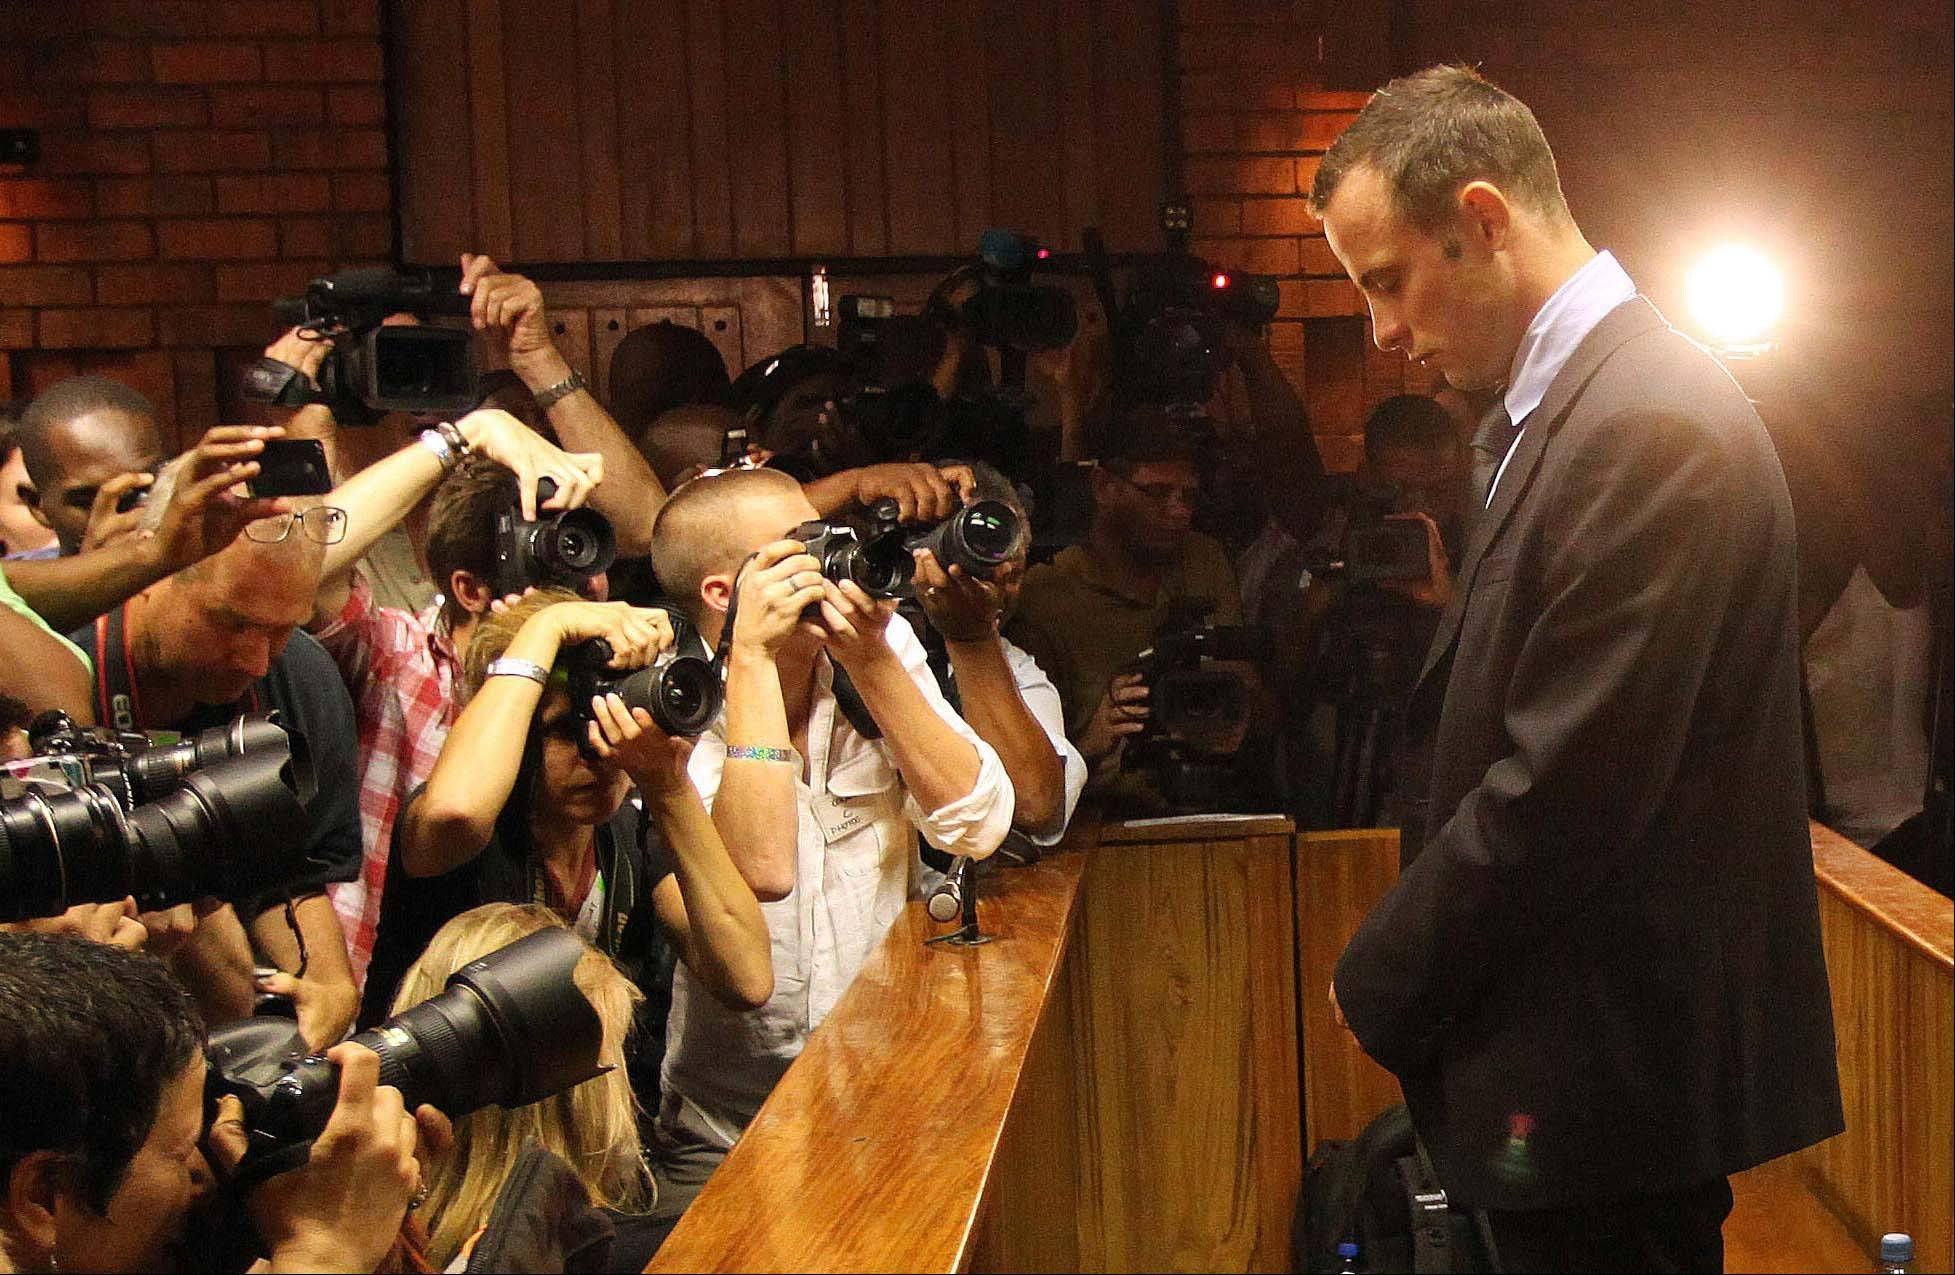 Olympic athlete Oscar Pistorius as he stands in the dock Feb. 23, during his bail hearing at the magistrates court in Pretoria, South Africa.